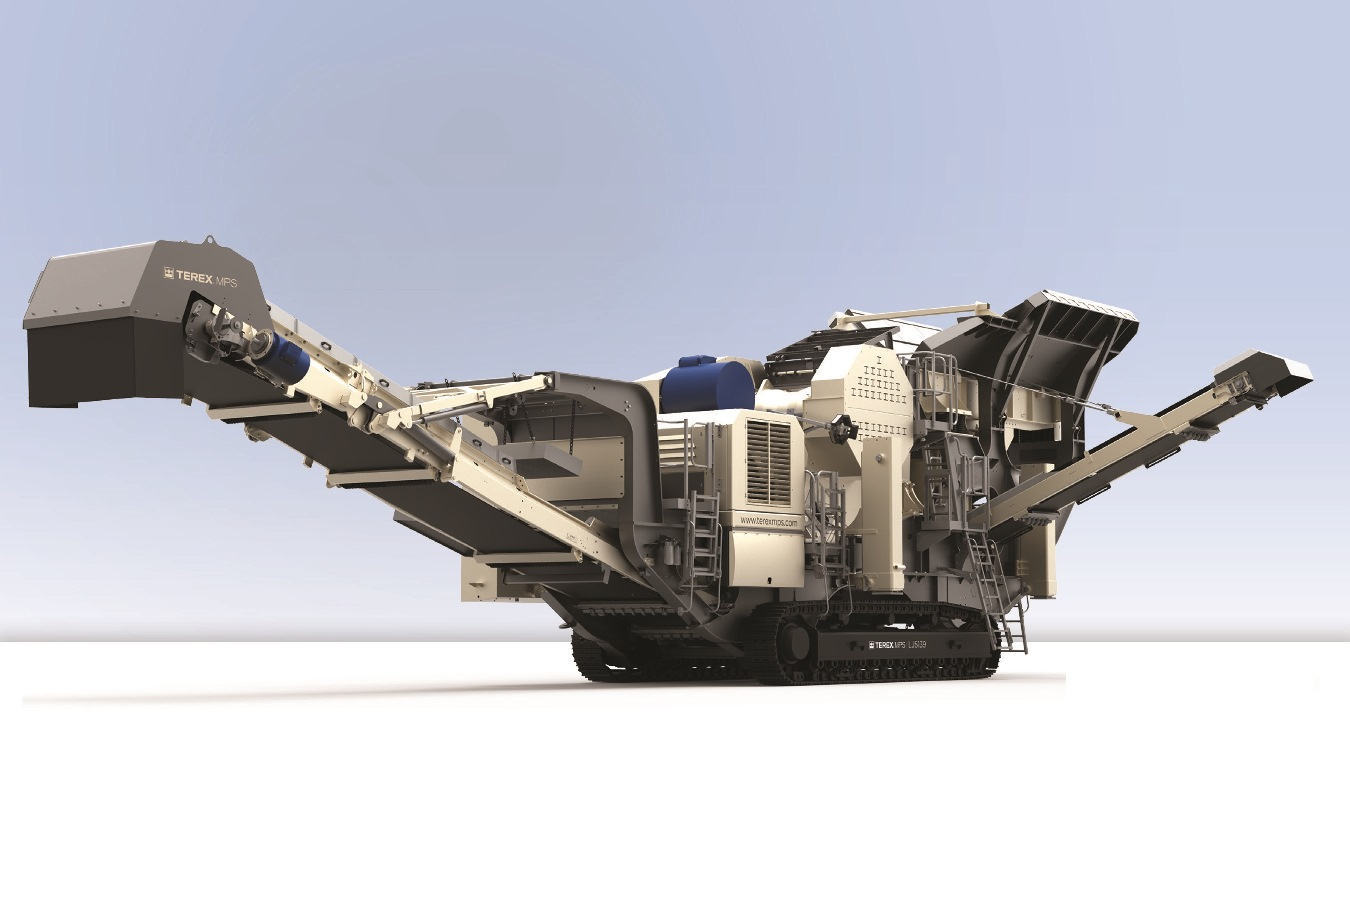 DAQ sensors measure stress loads on extreme LJ5139 jaw crusher machines